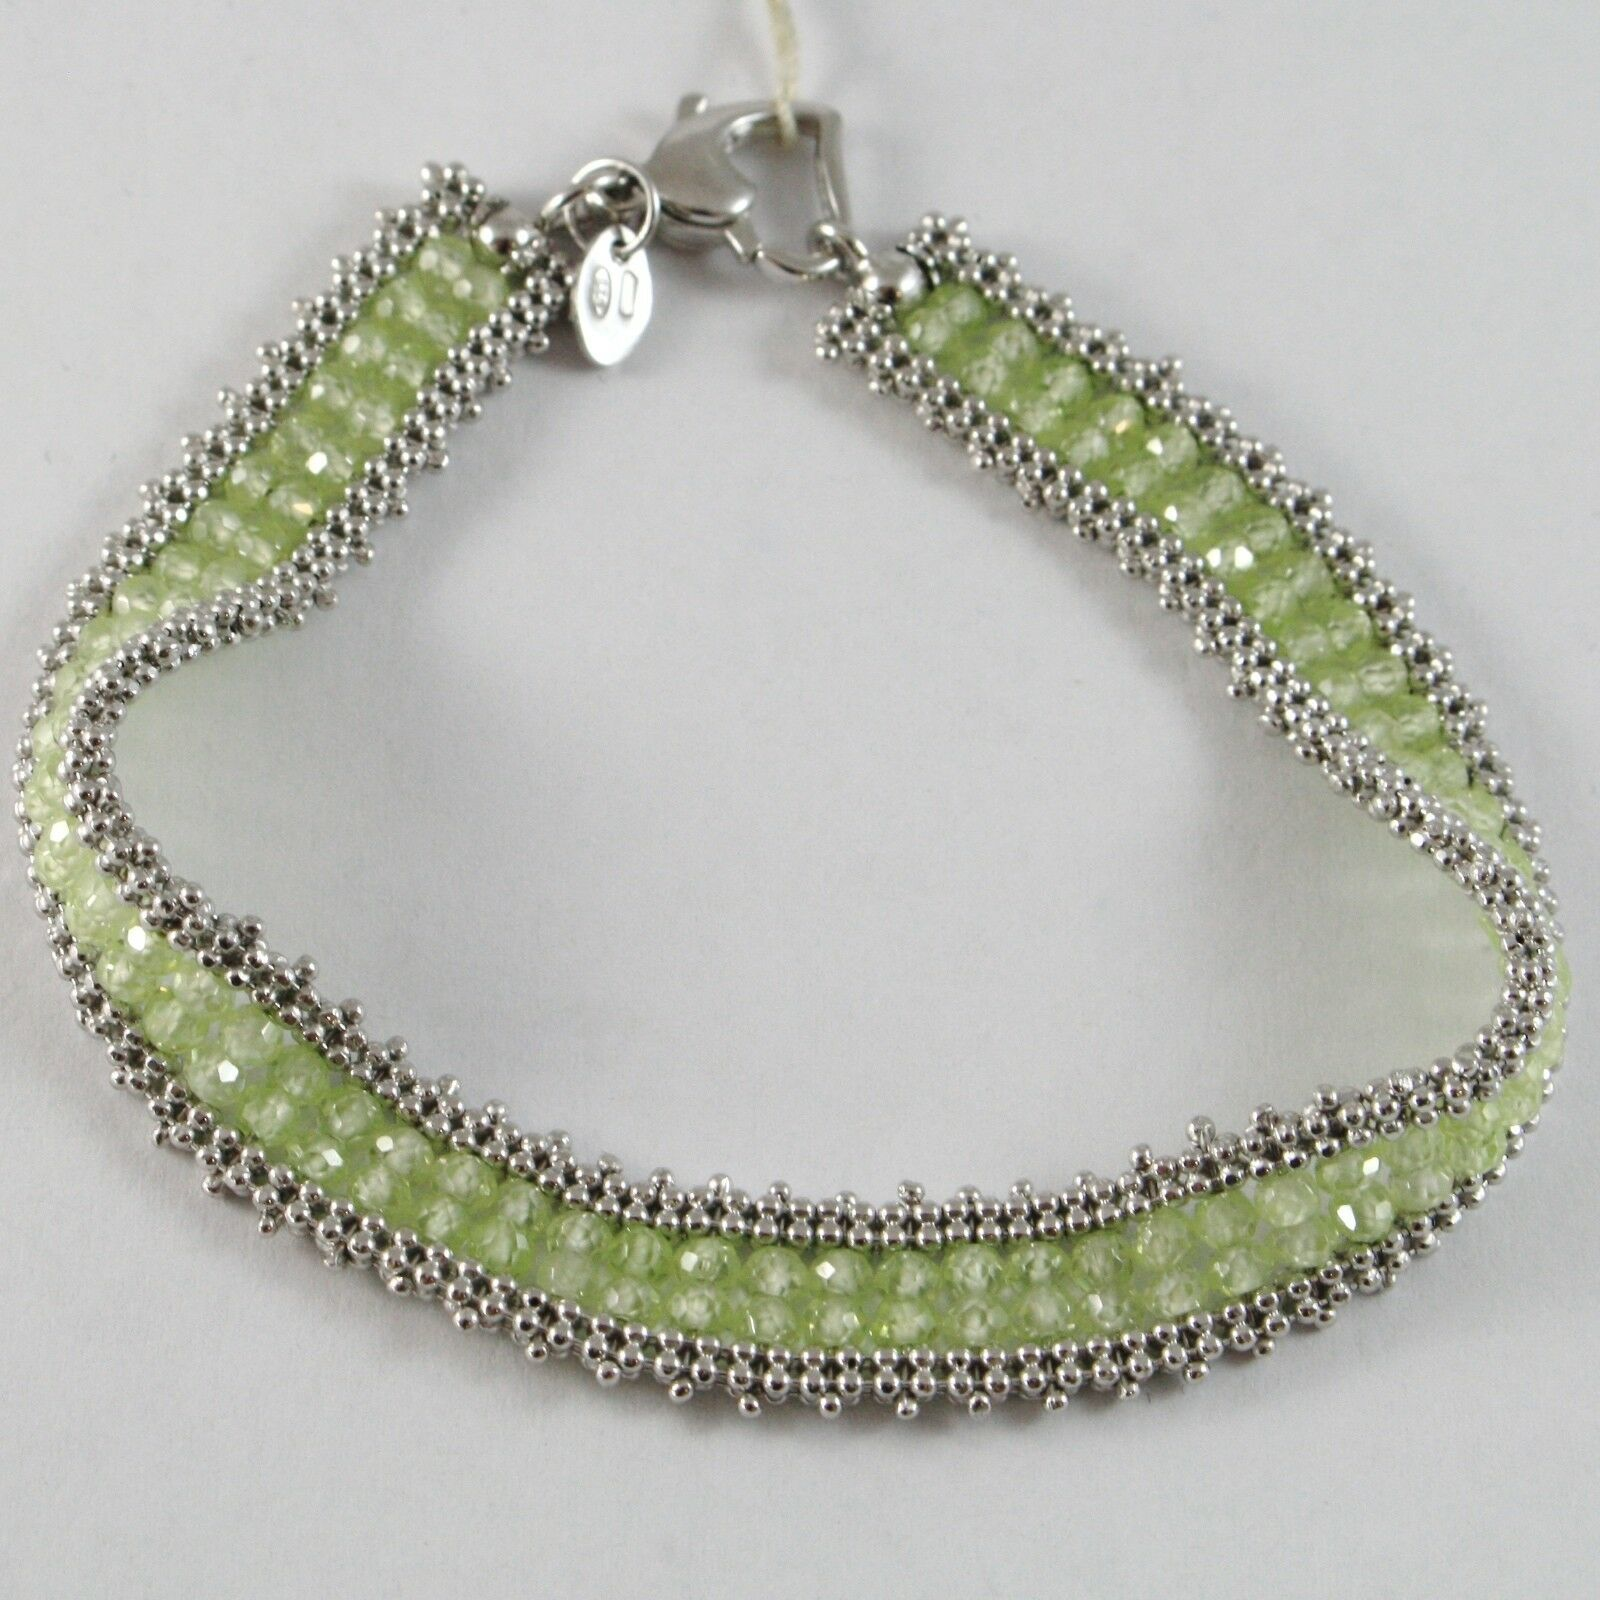 925 Silver Bracelet, Tennis Balls Multi Wires, Peridot Green, Made in Italy